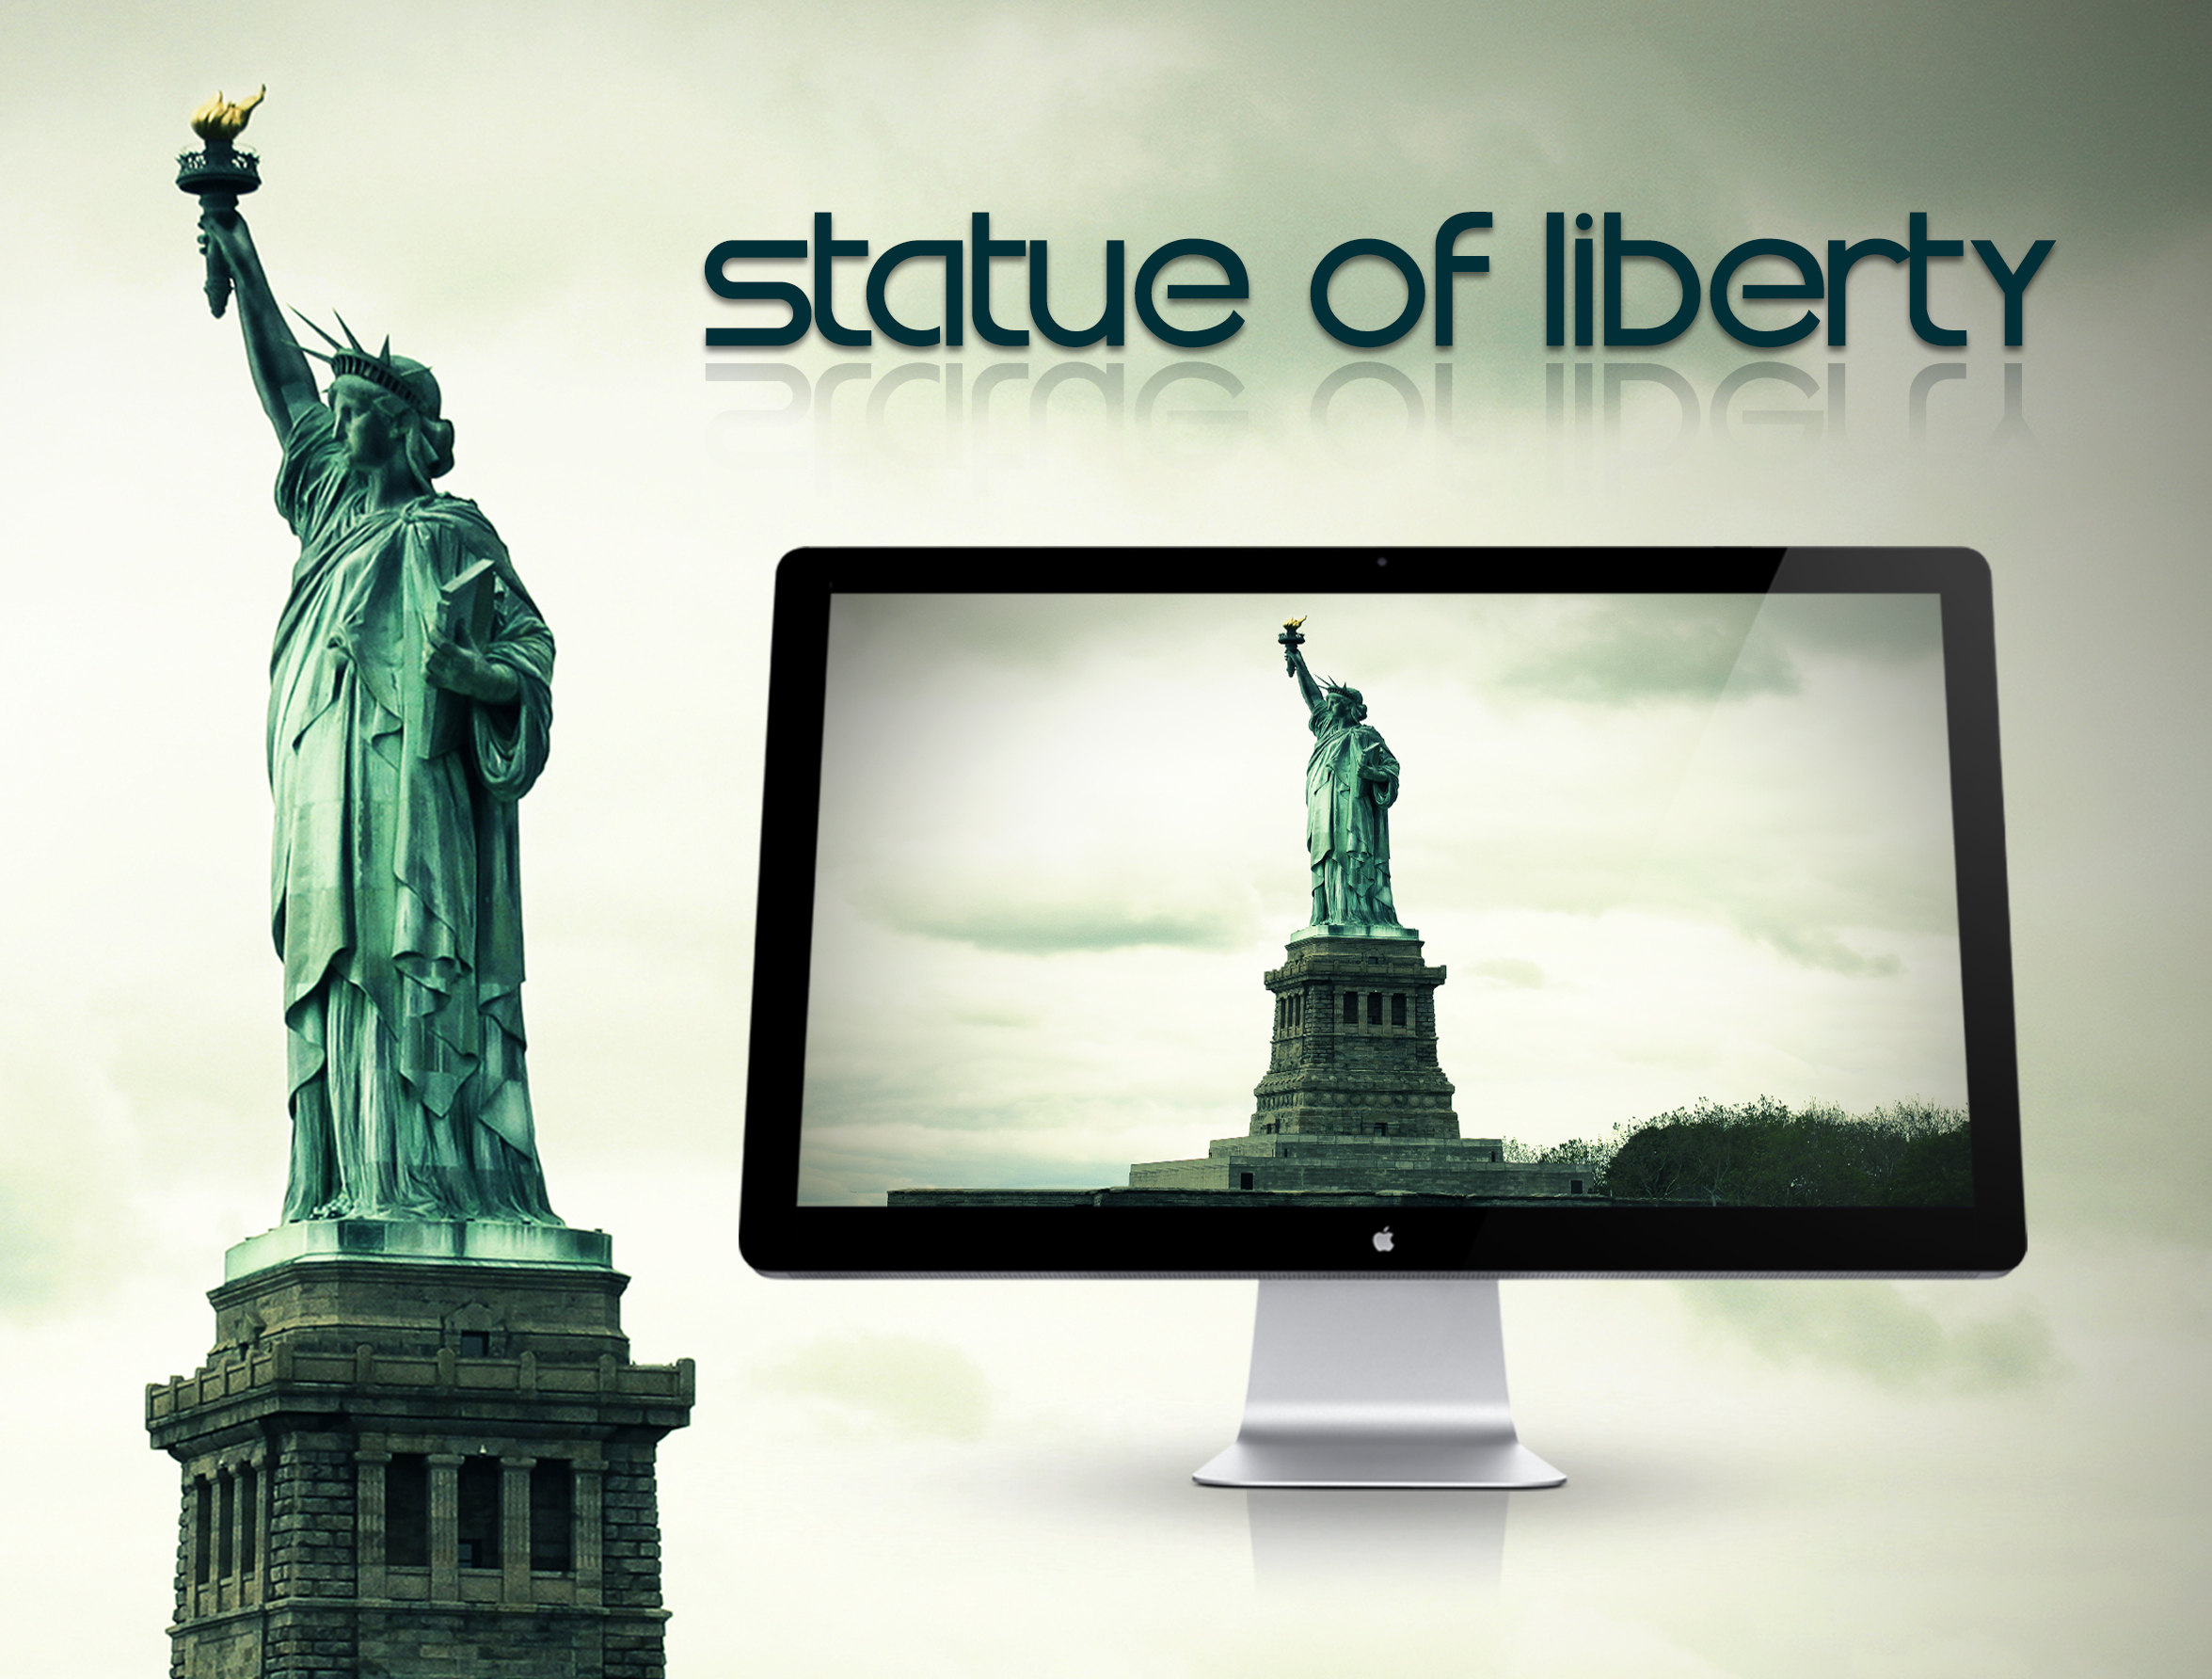 Statue Of Liberty Wallpaper By Hercules1997 On Deviantart